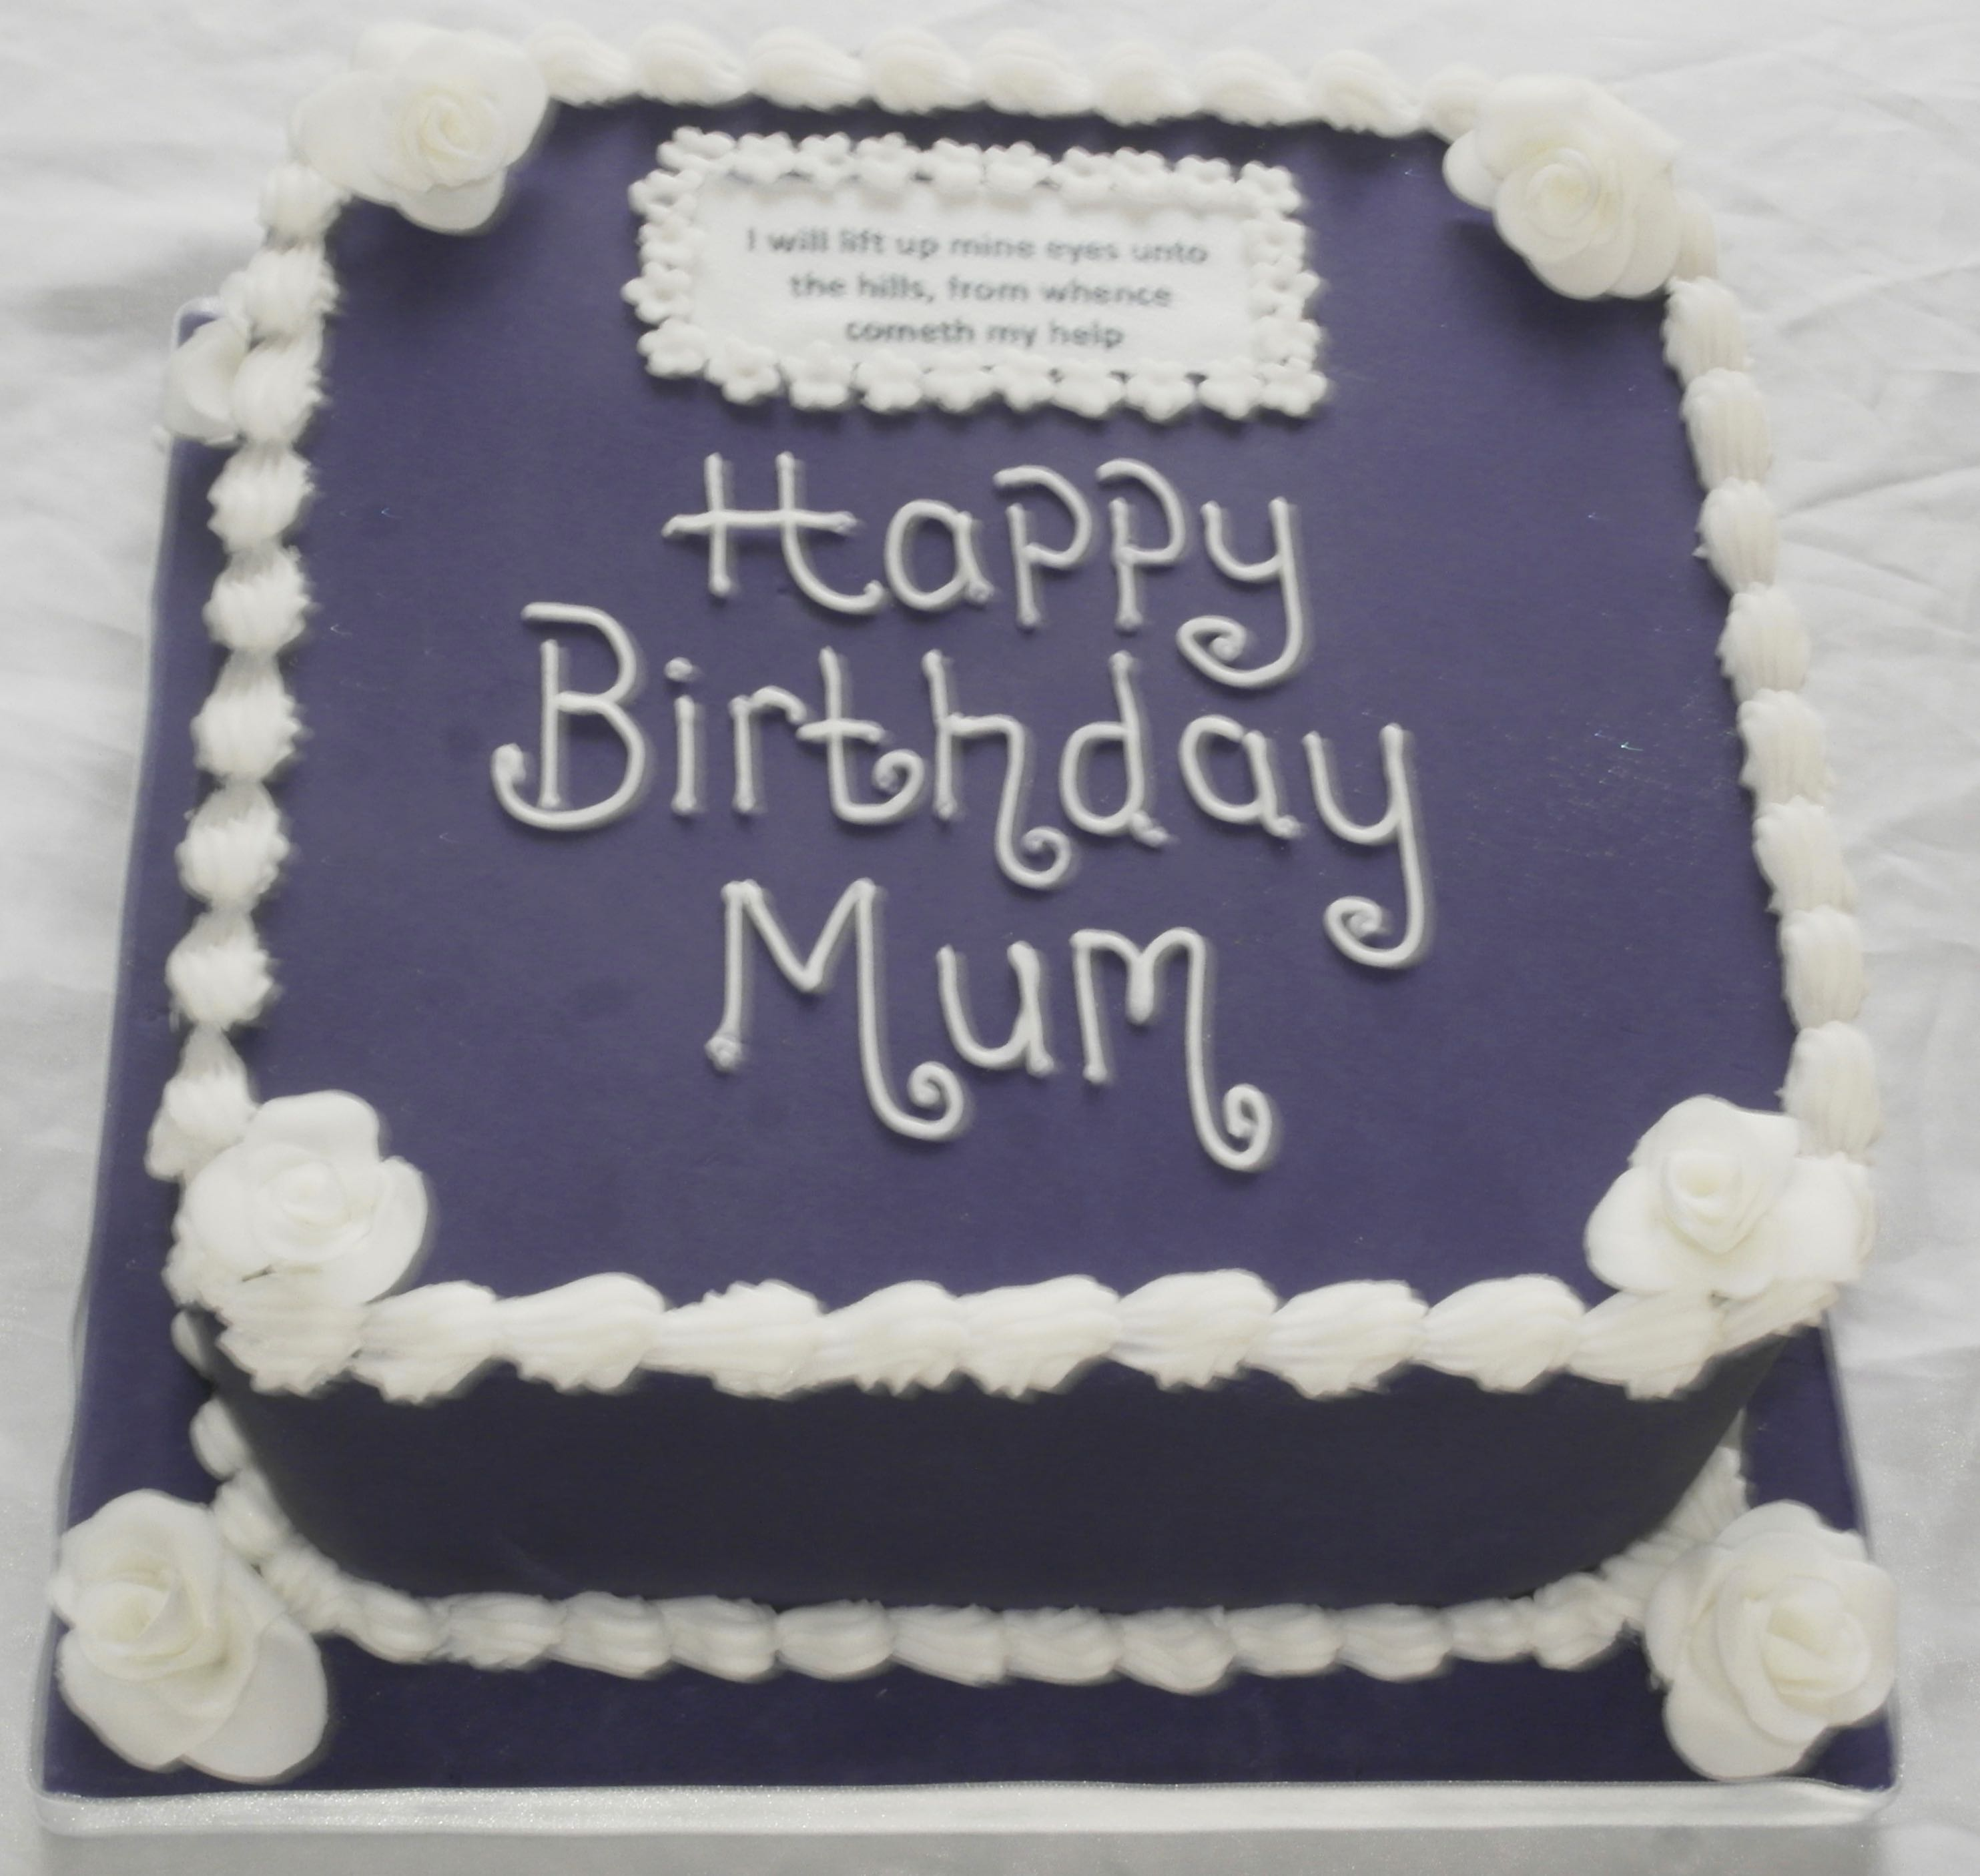 Birthday Cake for Mum with Bible Verse